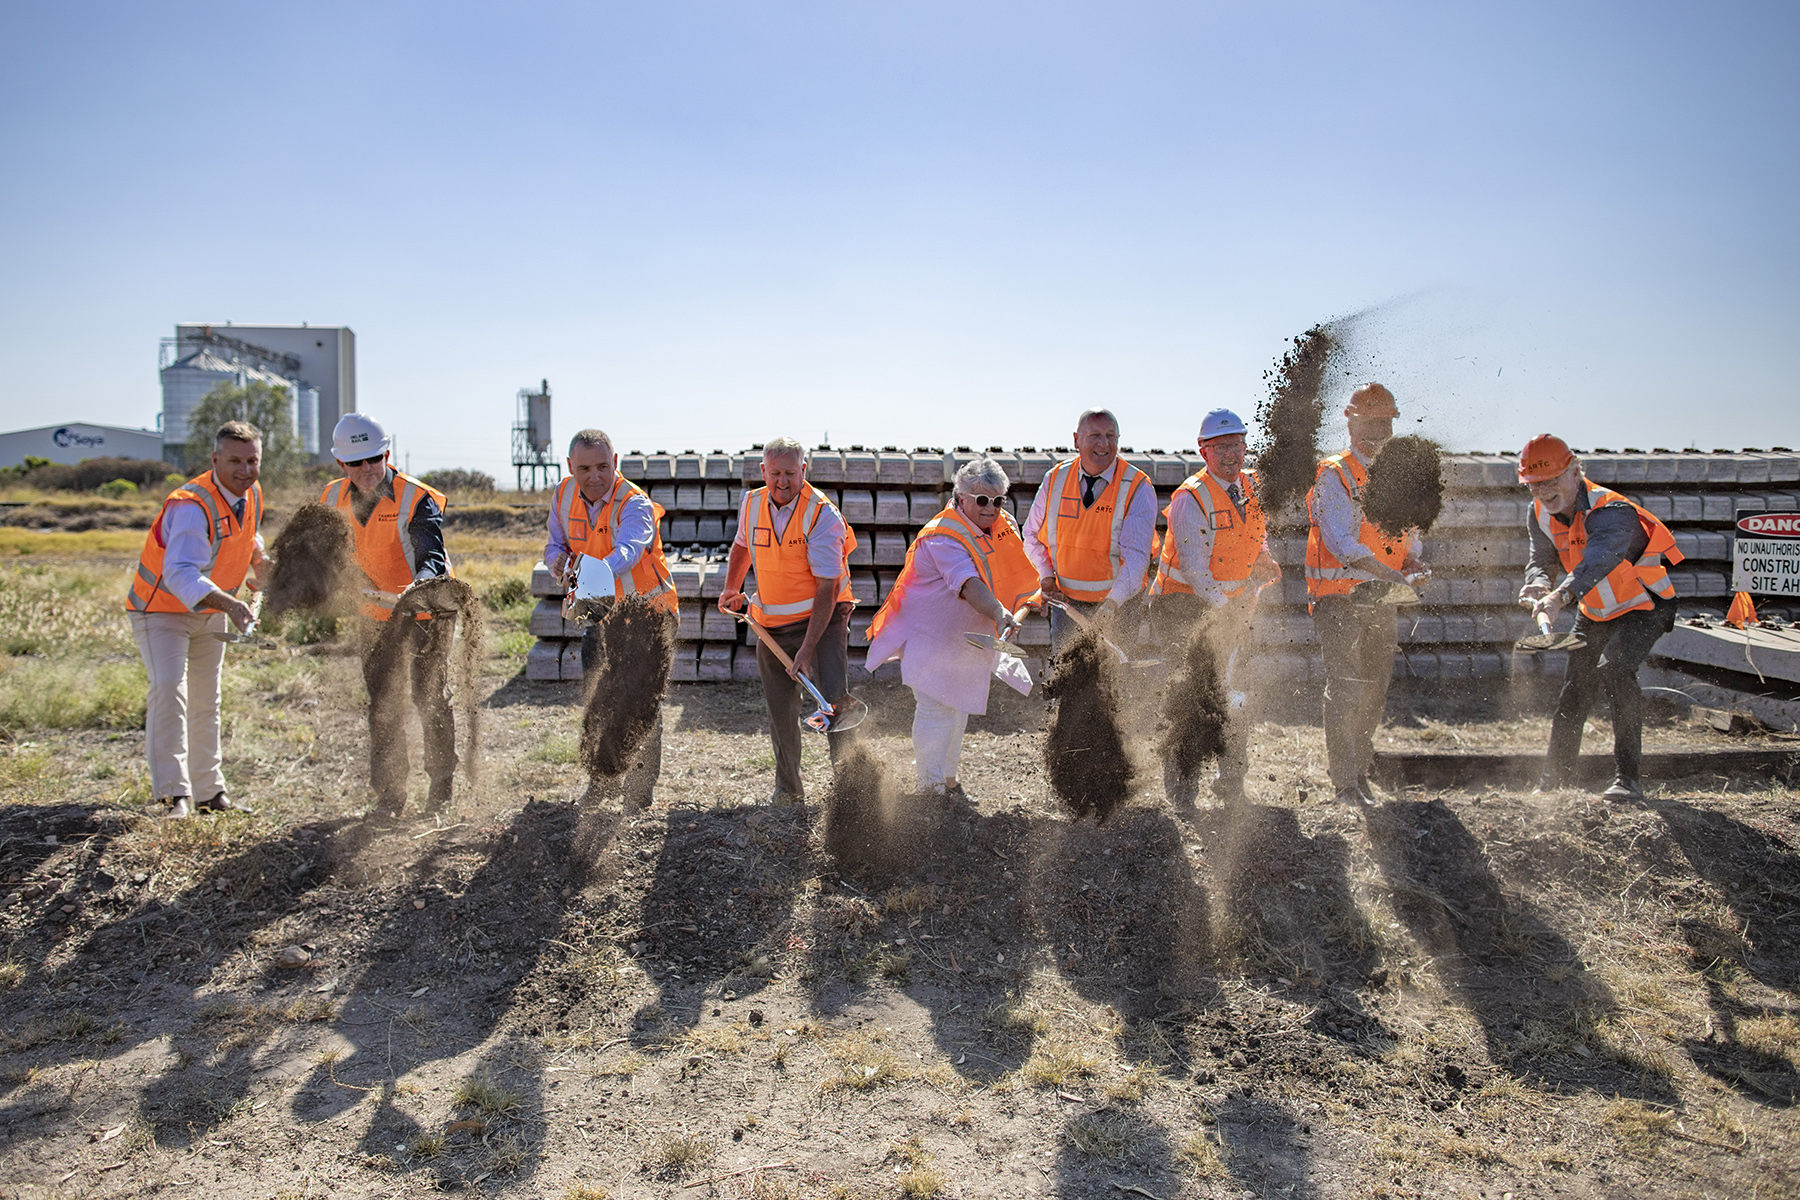 Sod turn for Narrabri to North Star project